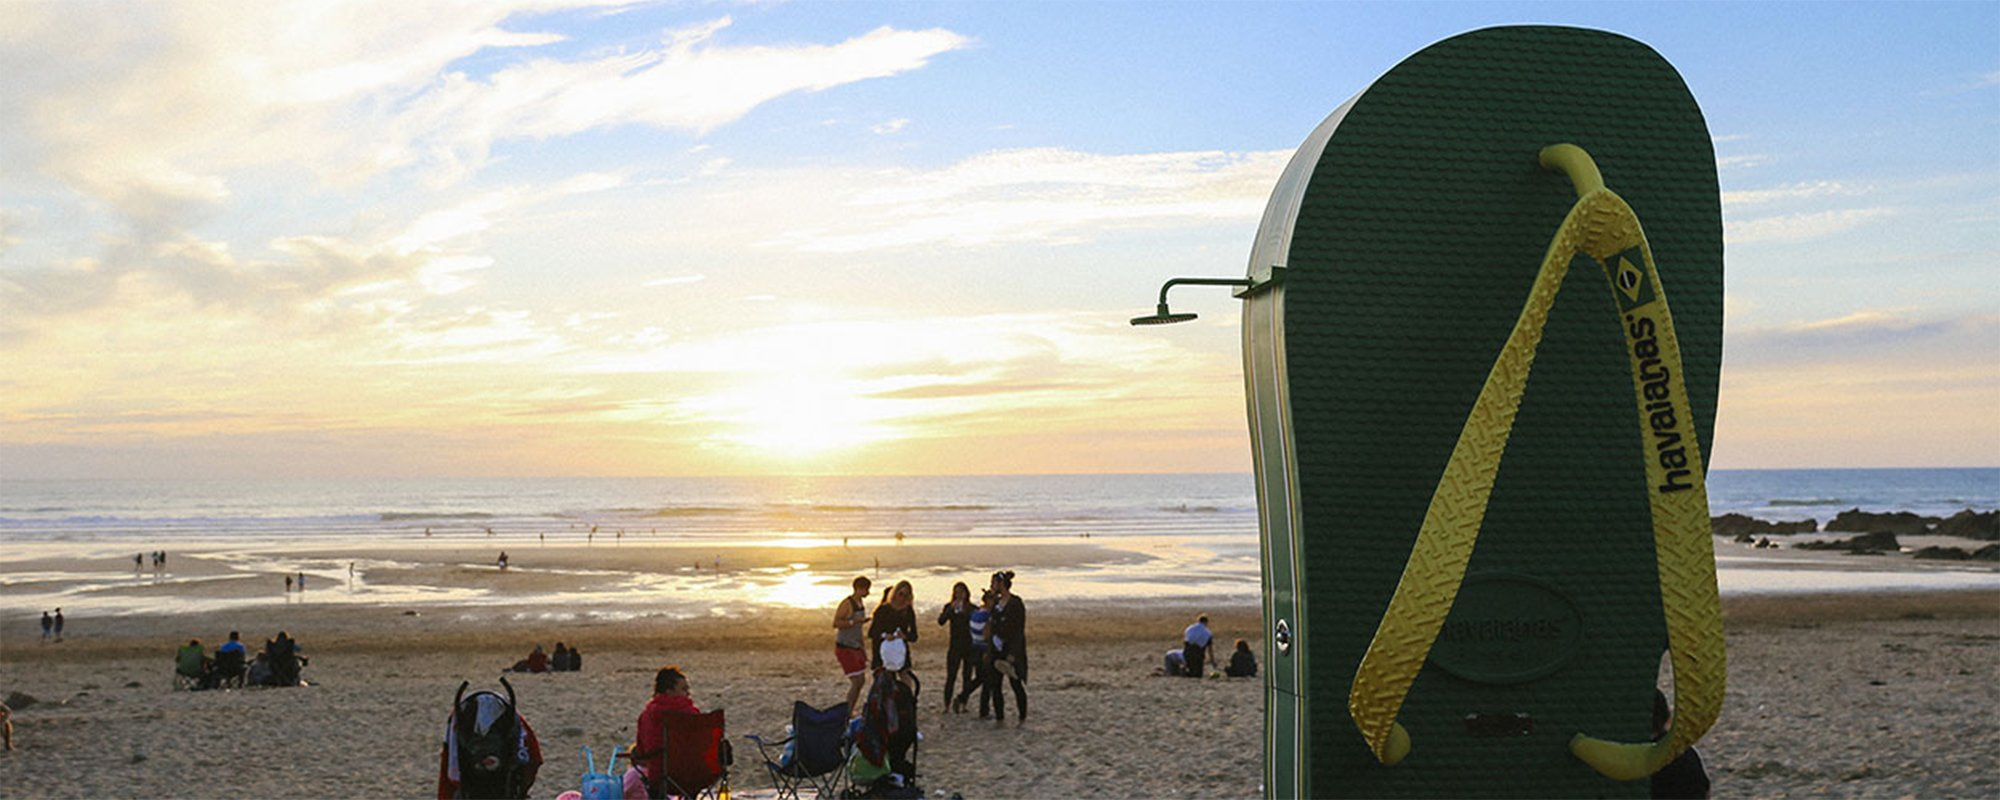 WHERE ARE THE HAVAIANAS SHOWERS ON THE EUROPEAN COASTLINE?